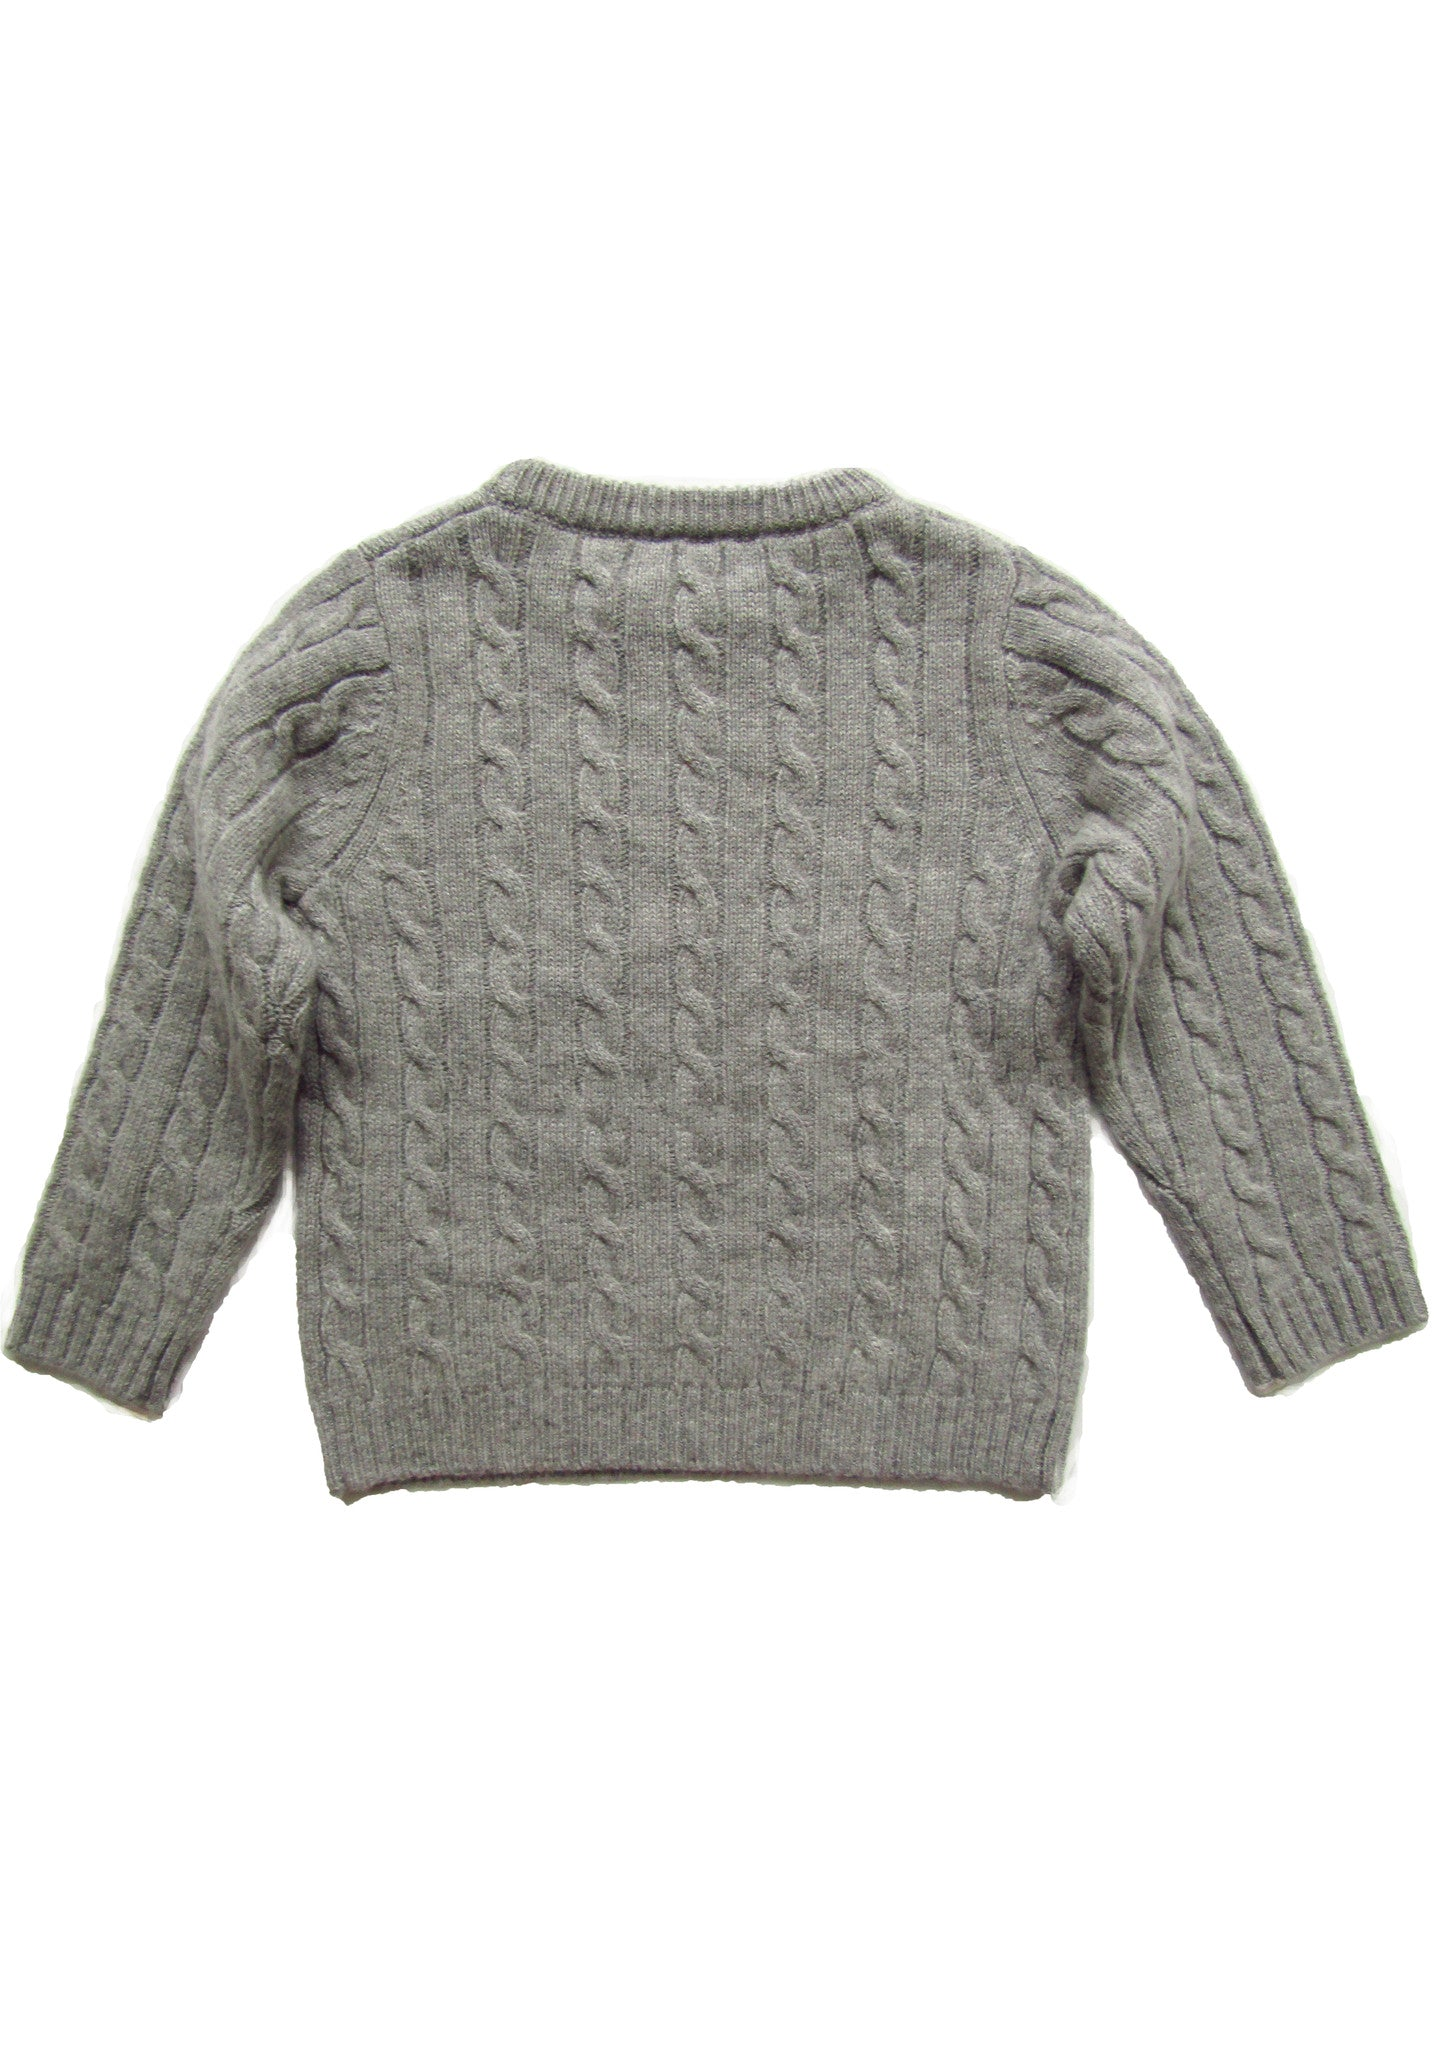 CashmereHome Cashmere Sweater Kids